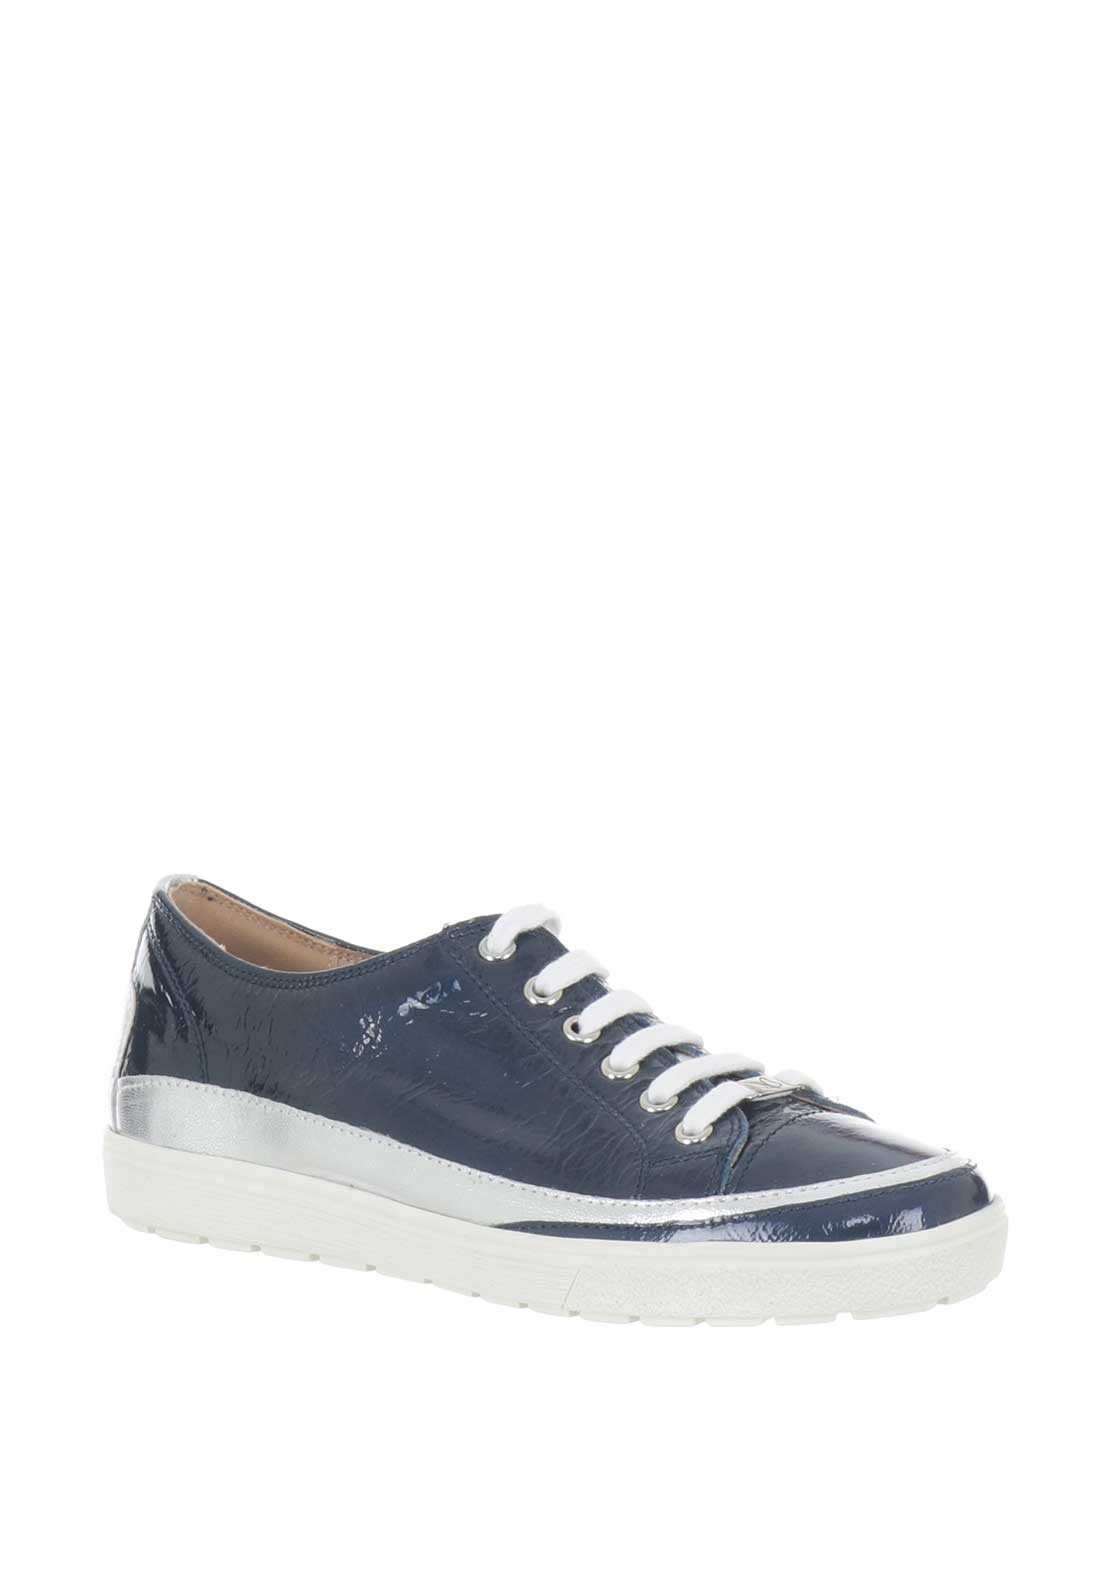 Caprice Patent Leather Trainers, Navy